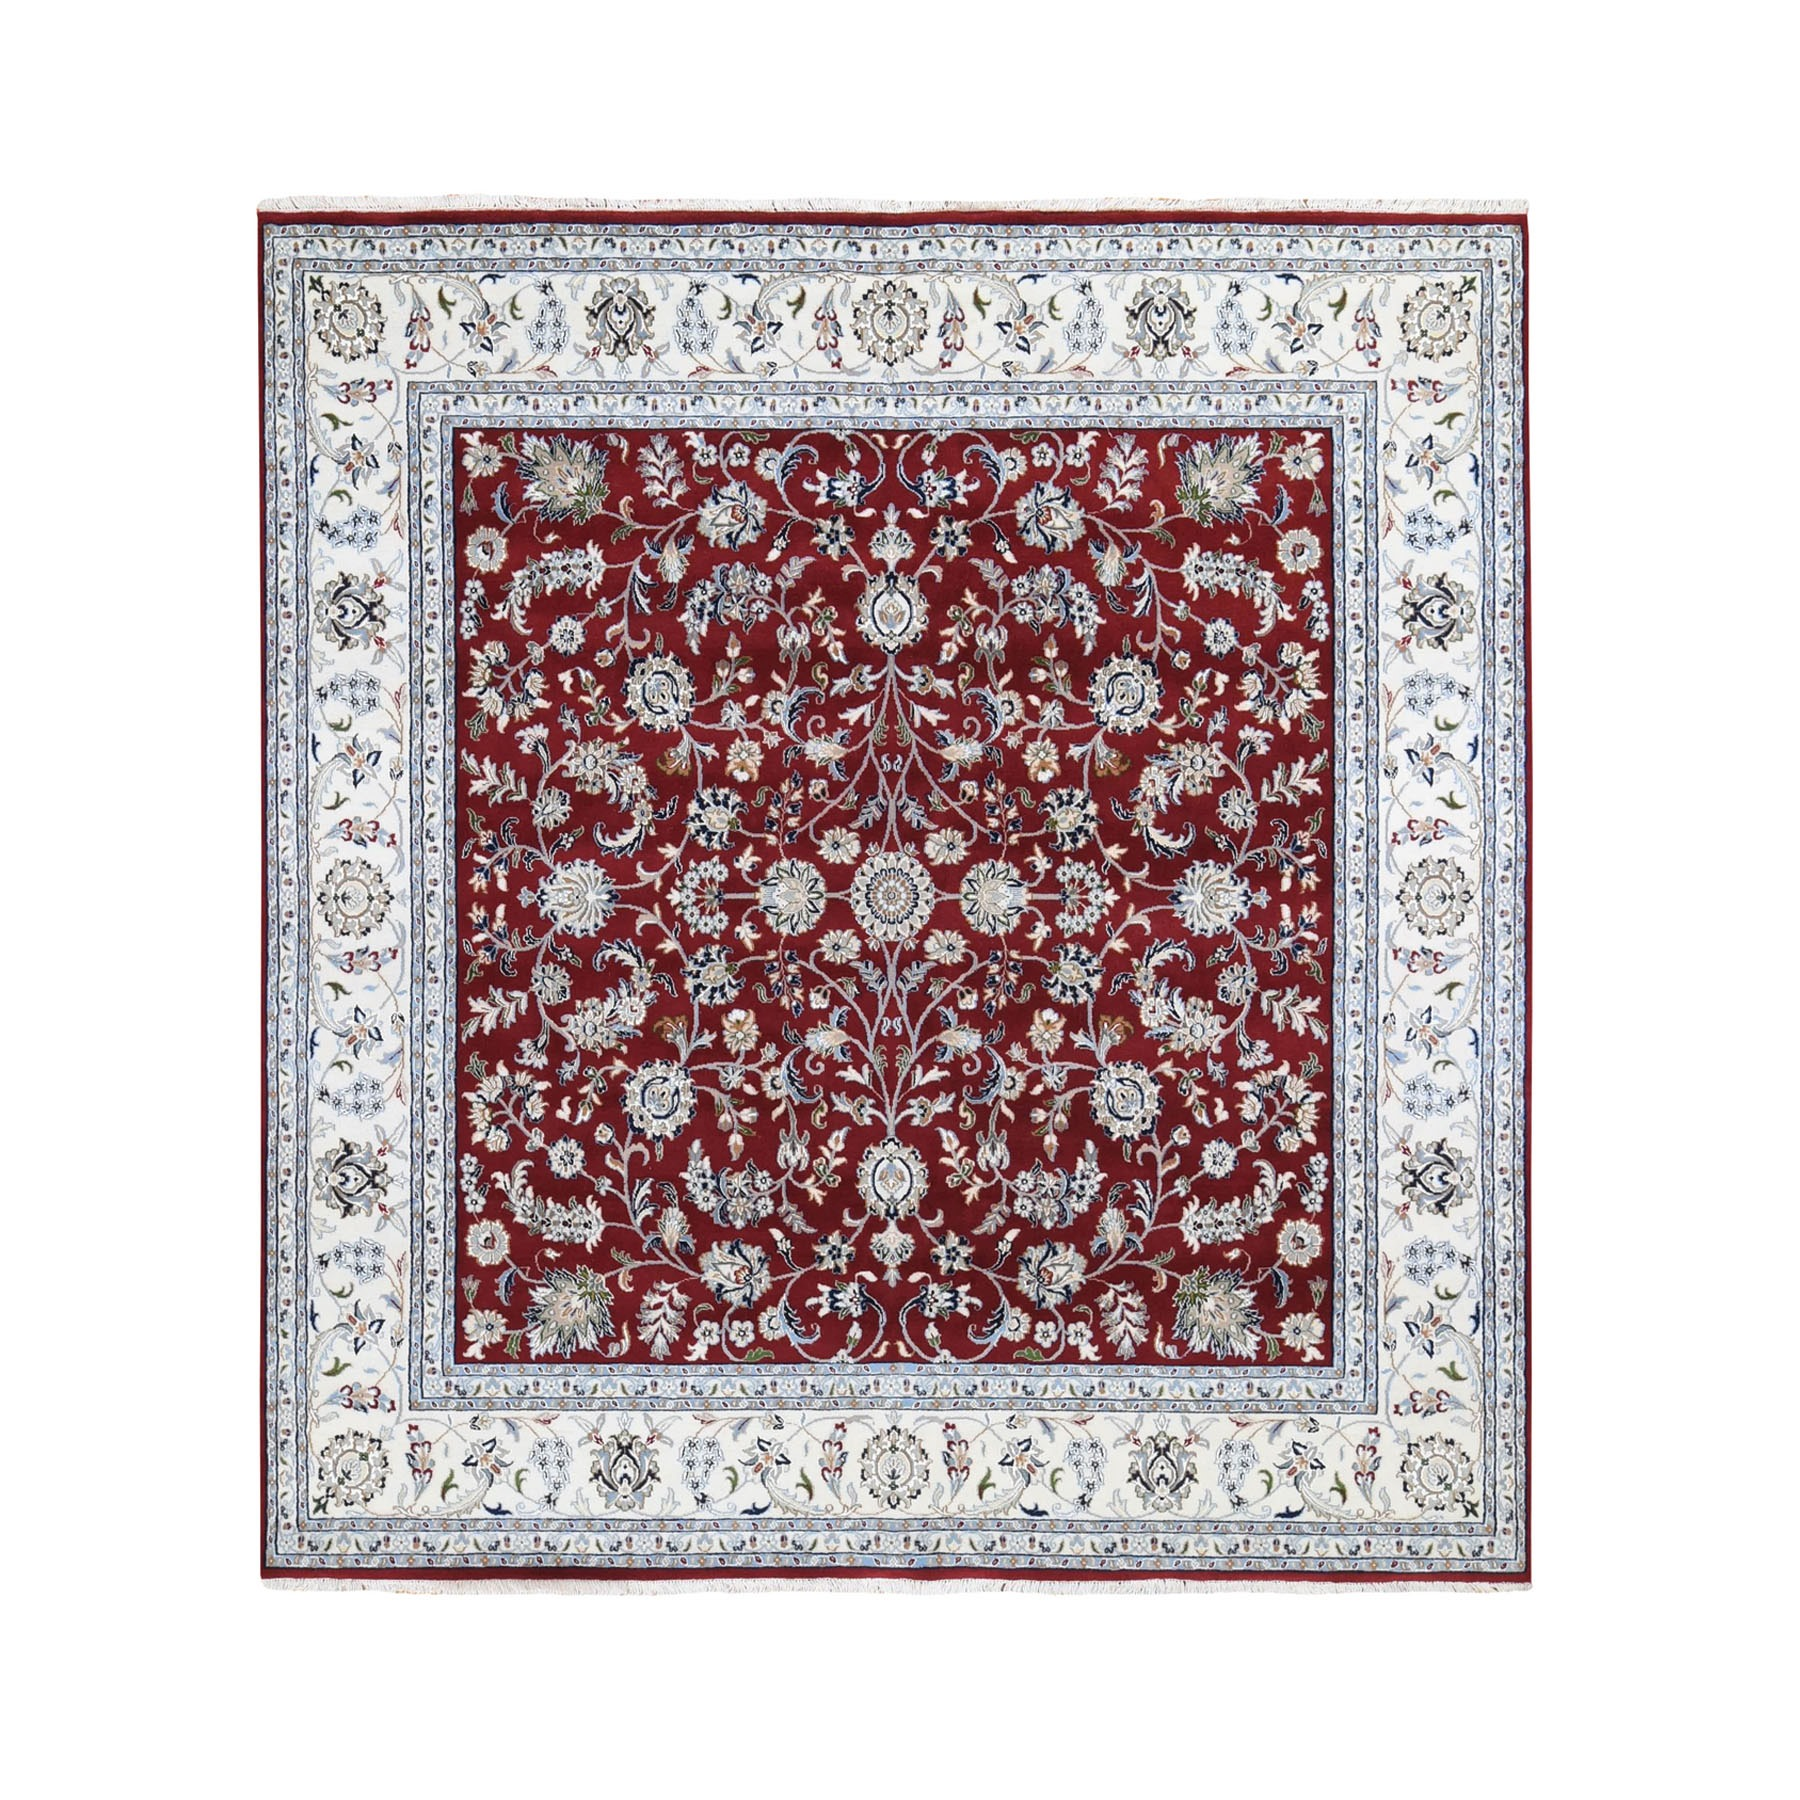 Pirniakan Collection Hand Knotted Red Rug No: 0195656